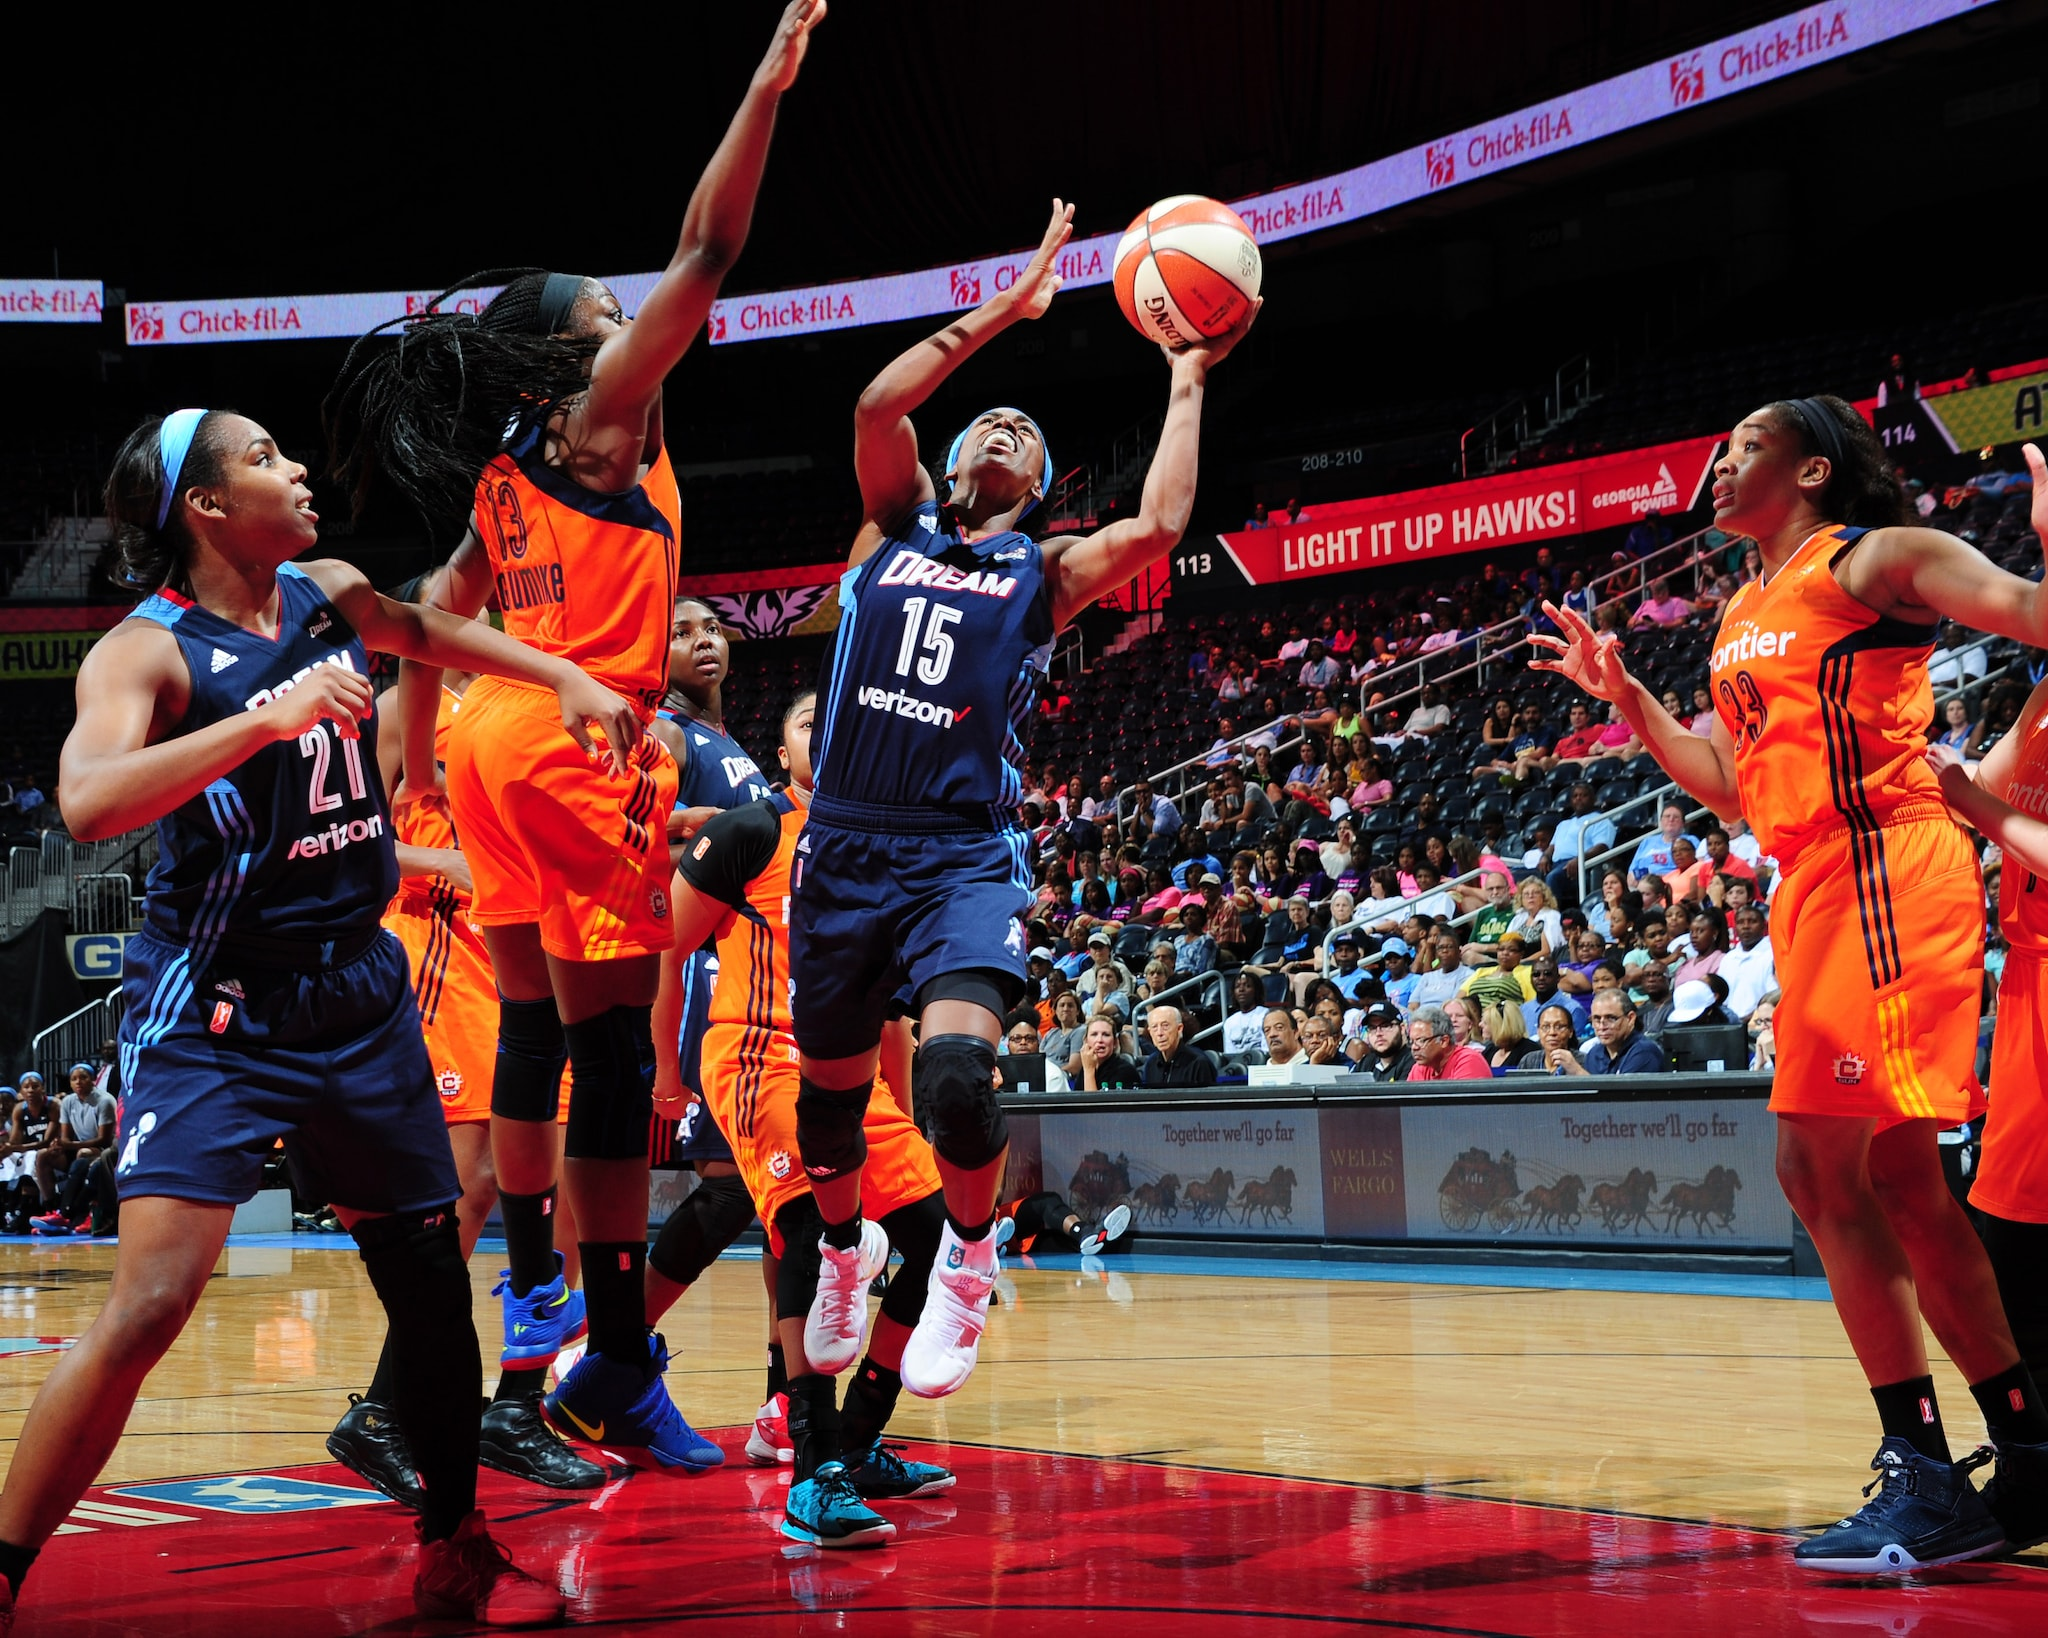 ATLANTA, GA - JUNE 12: Tiffany Hayes #15 of the Atlanta Dream shoots against the Connecticut Sun during the game on June 12, 2016 at Philips Arena in Atlanta, Georgia. NOTE TO USER: User expressly acknowledges and agrees that, by downloading and or using this Photograph, user is consenting to the terms and conditions of the Getty Images License Agreement. Mandatory Copyright Notice: Copyright 2016 NBAE (Photo by Scott Cunningham/NBAE via Getty Images)